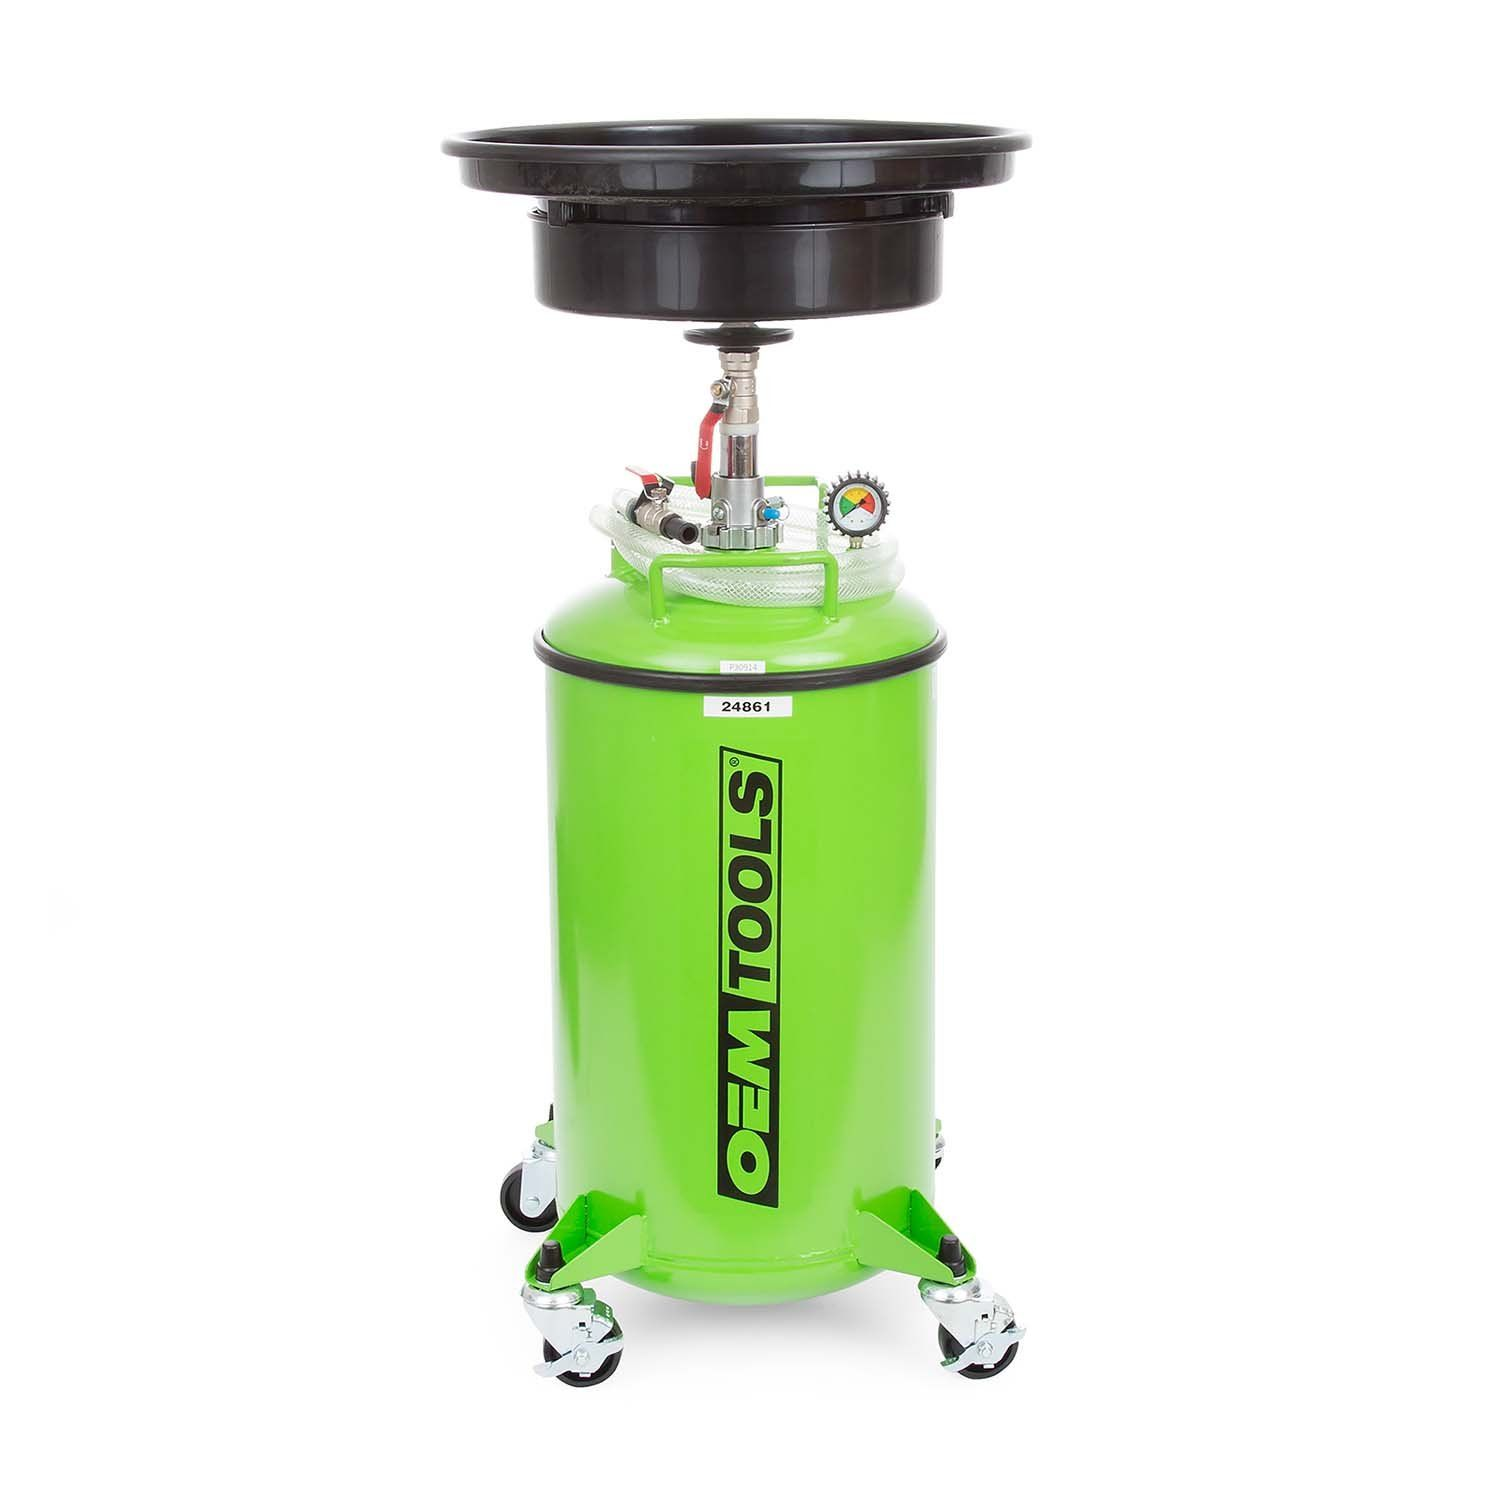 Oem Tools 24861 21 Gallon Oils Drain Green Pressurized Automotive Fluid Changing Tool Can Service 12 20 Vehicles Per Full Tank Easy E Oils Motor Oil Gallon